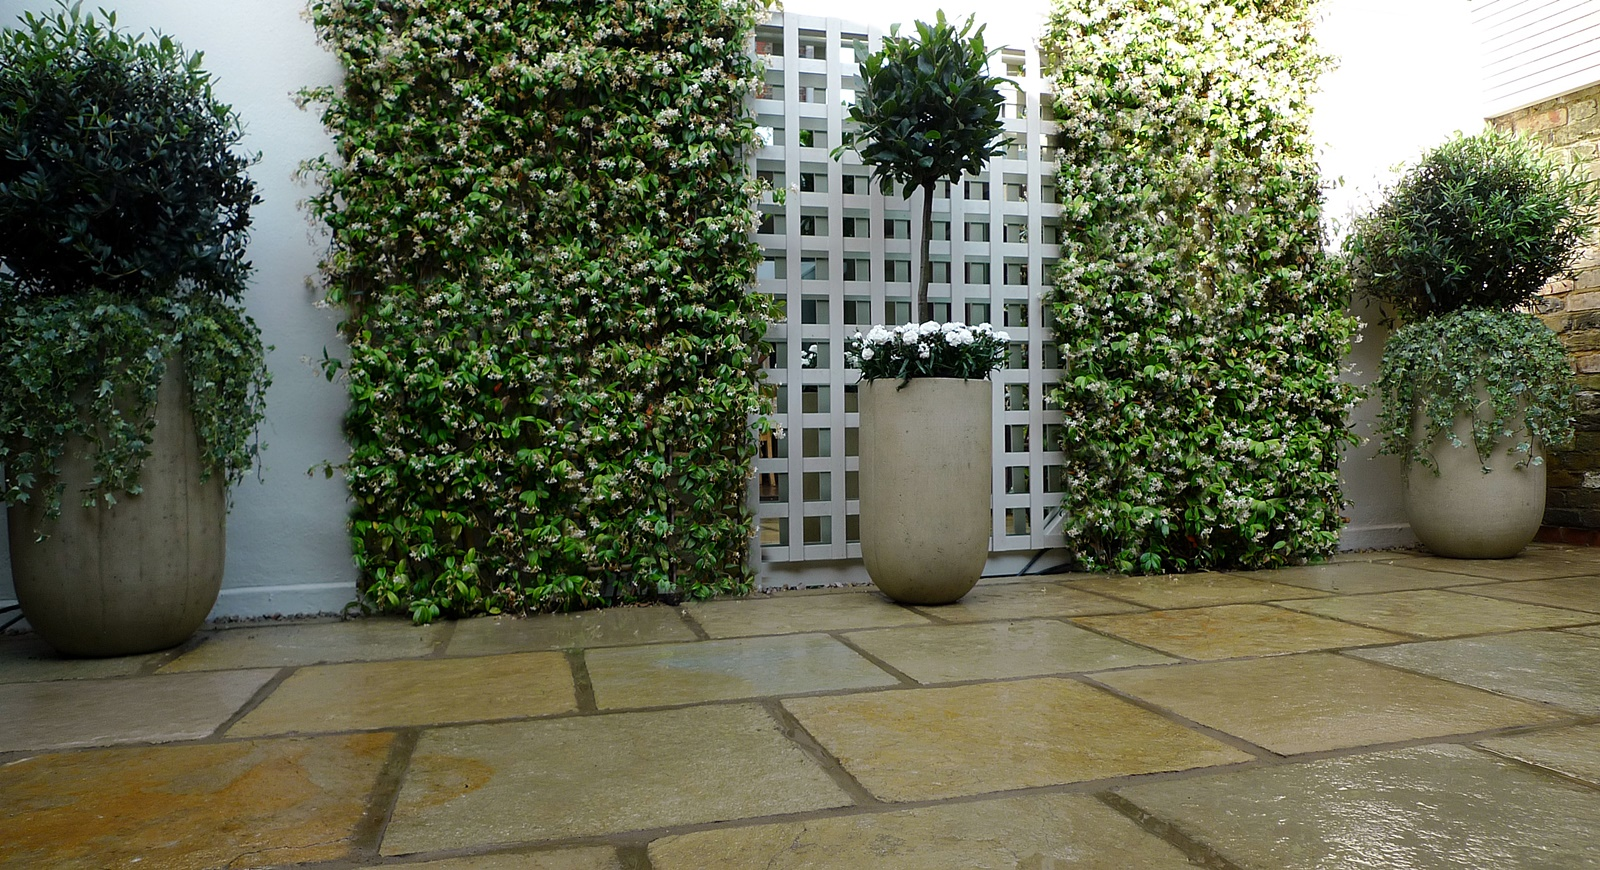 Courtyard minimalist contemporary garden design and designer belgravia soho london